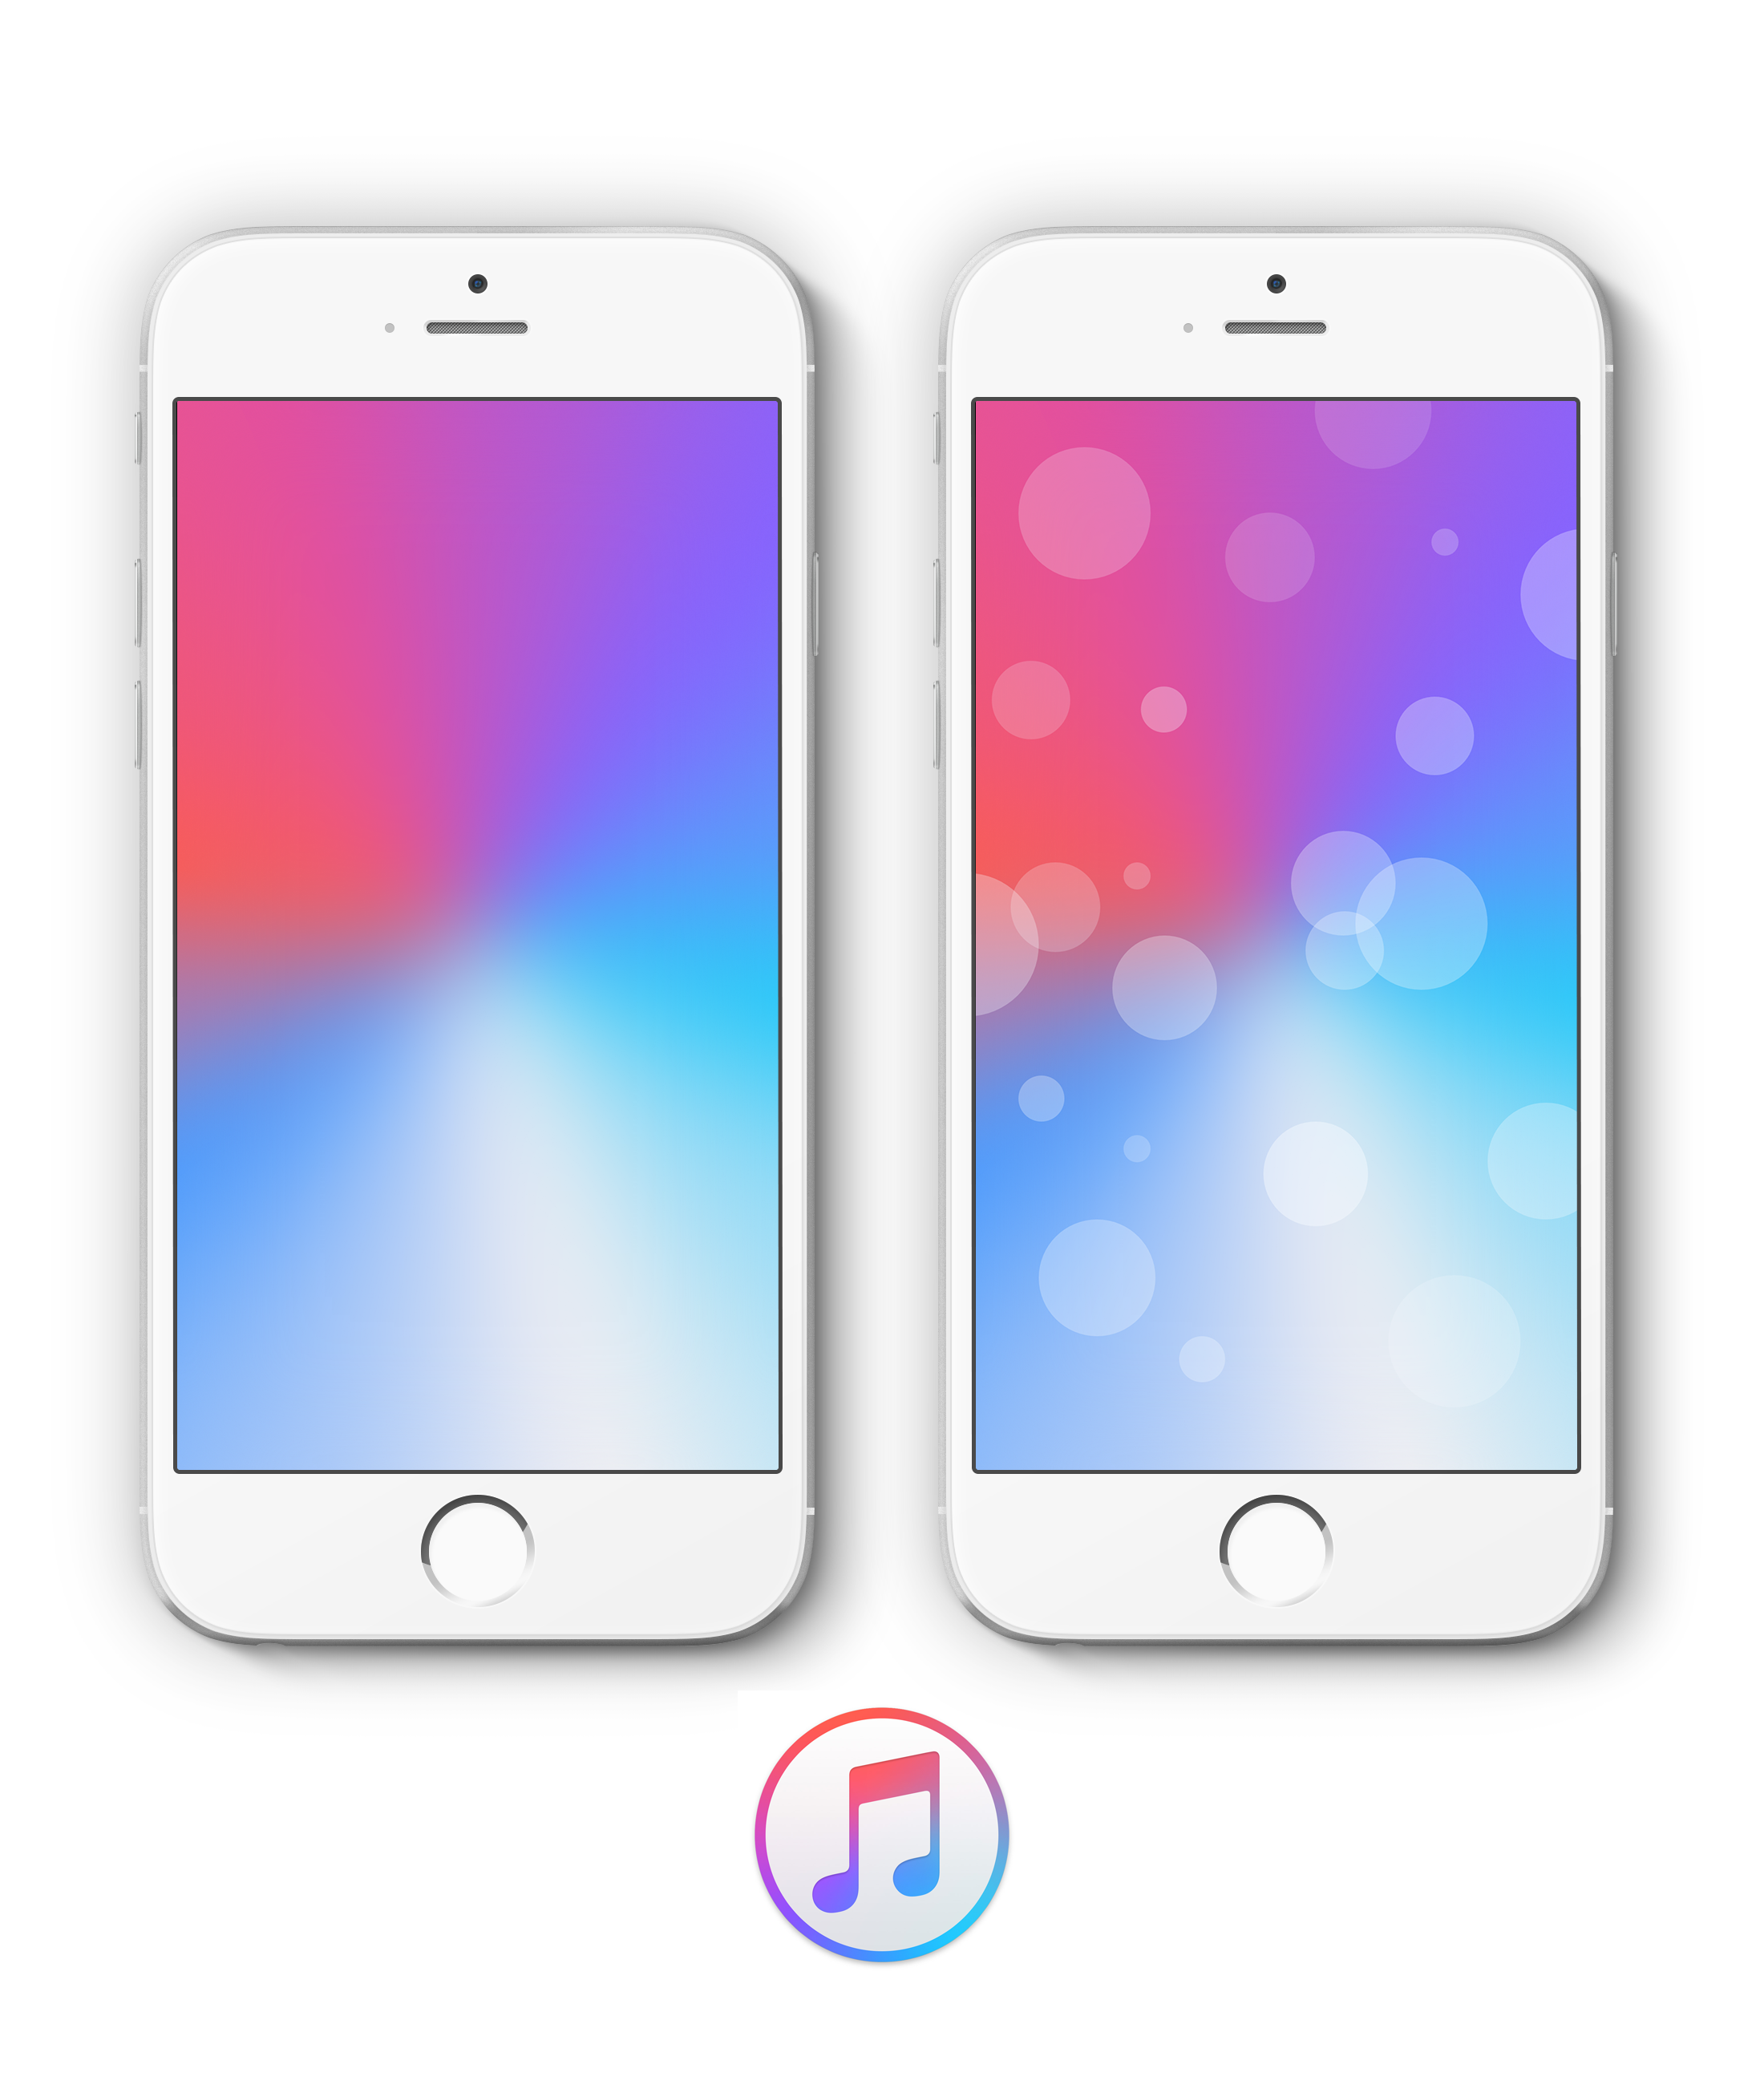 Apple Music Blank WallPaper by AR from AR App Iphone | HD ...